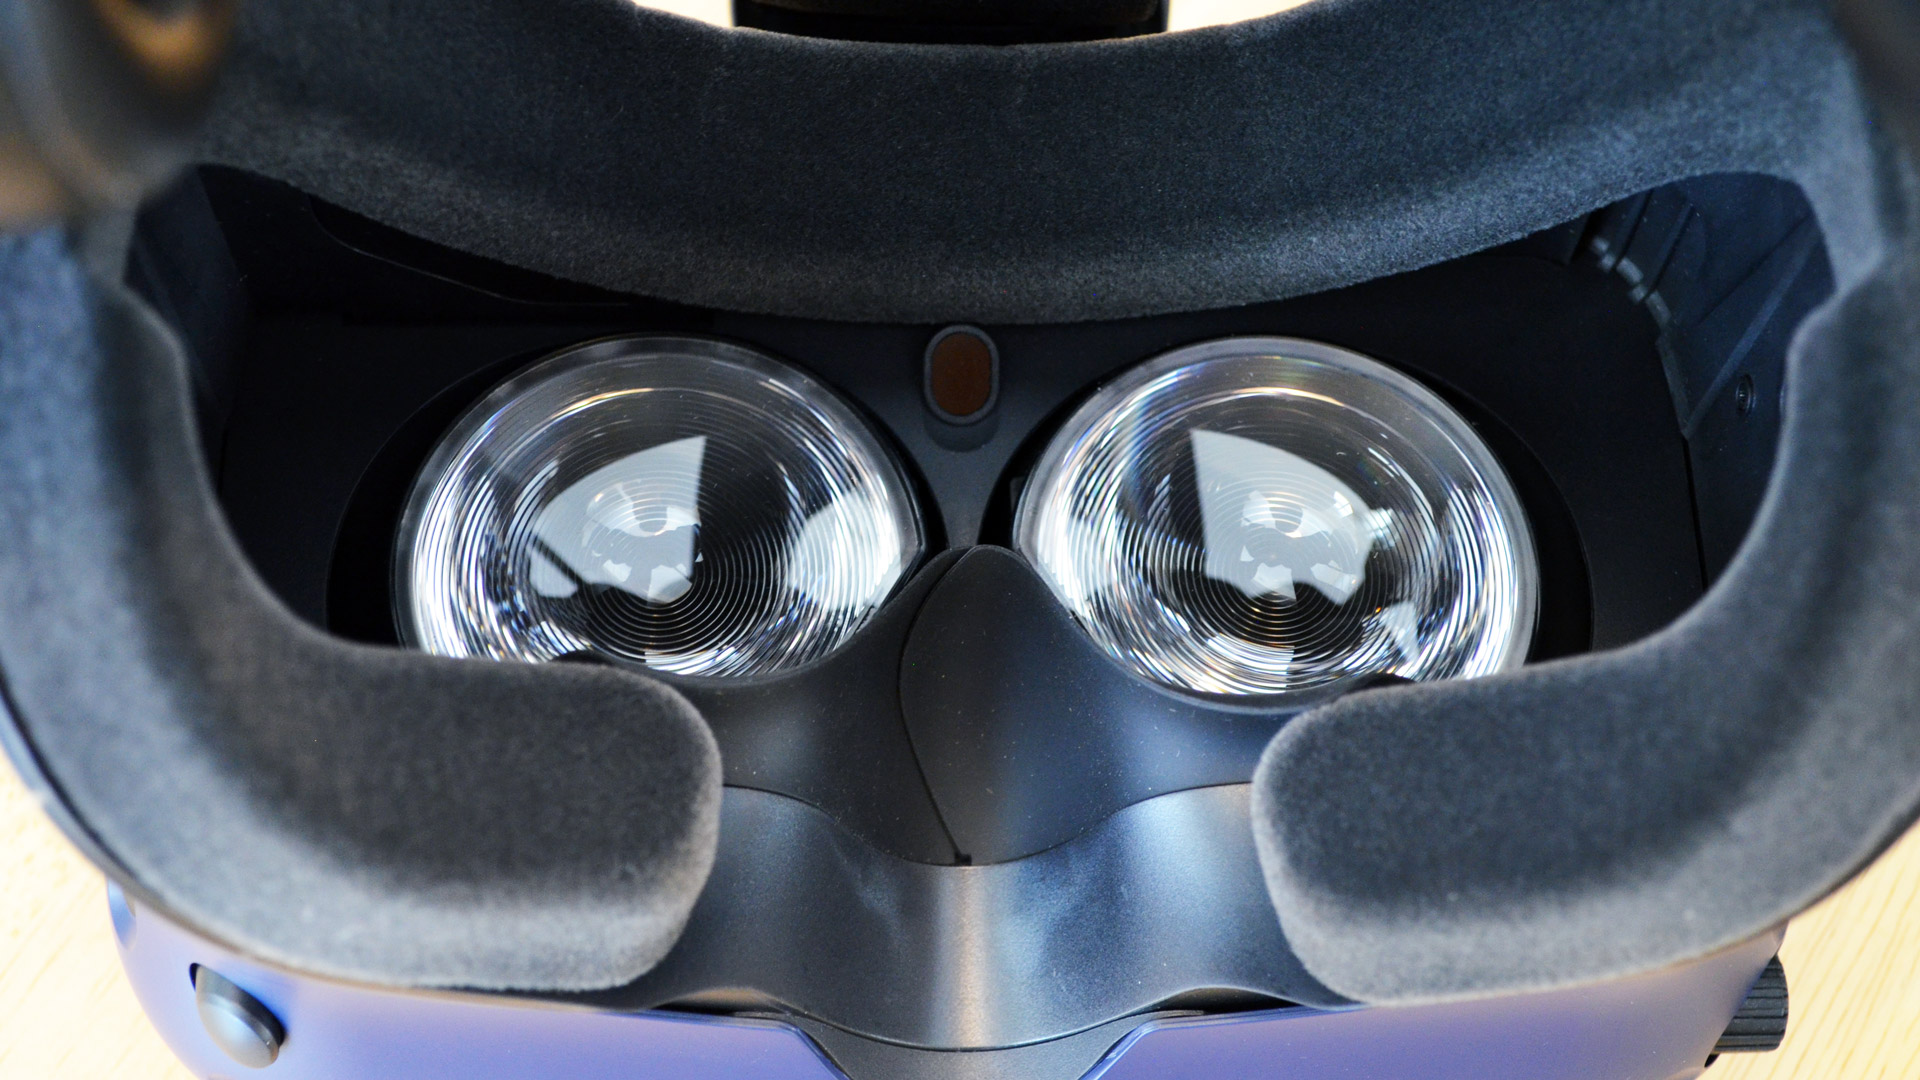 Htc Vive Pro Review Improvements Overshadowed By A Steep Price Wiring Kit Subnautica Photo Road To Vr